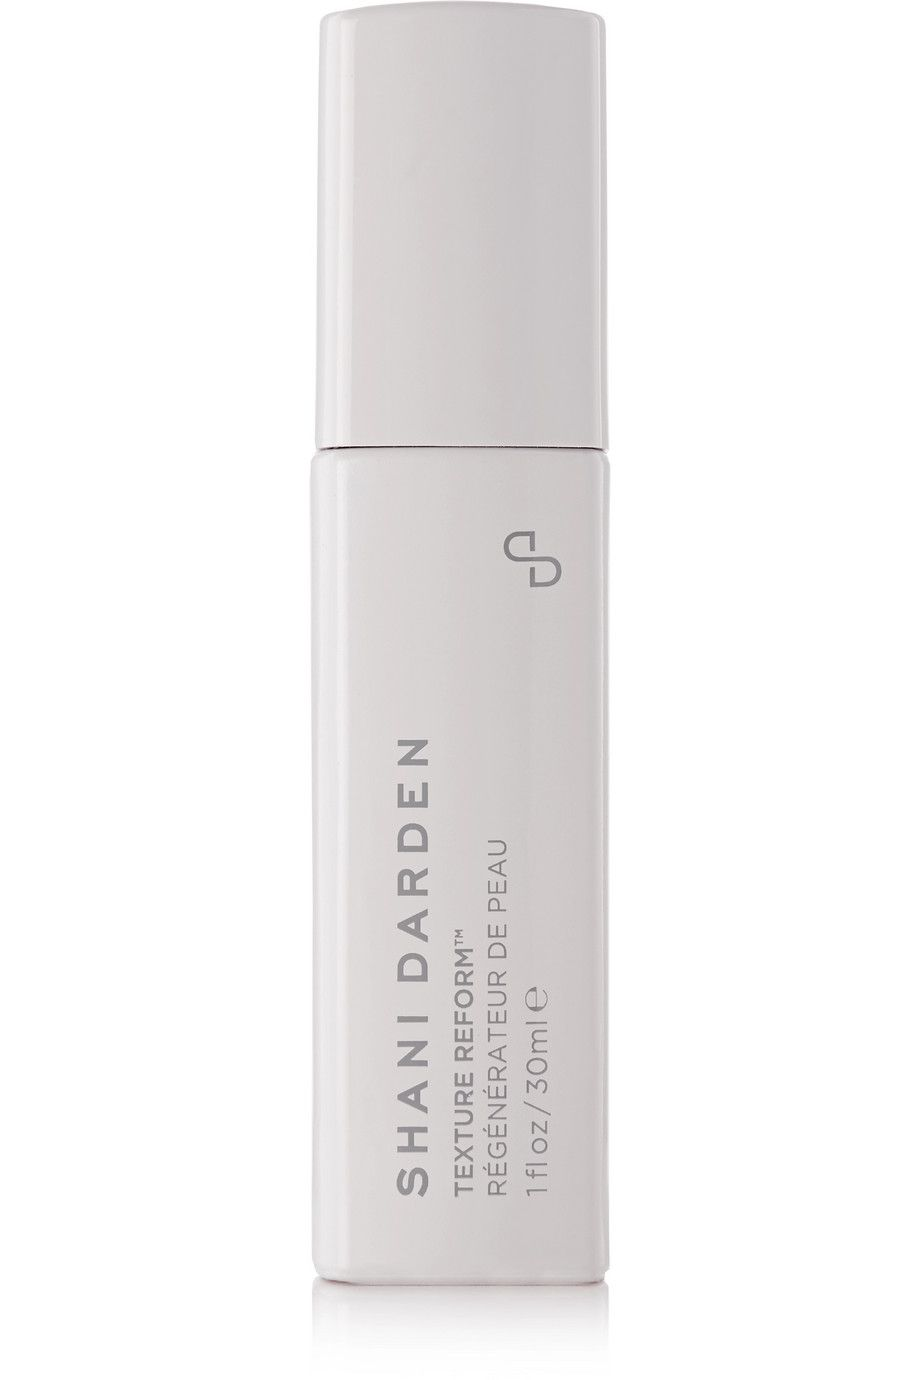 texture reform, in an all white bottle with grey writing and presumably a pump underneath